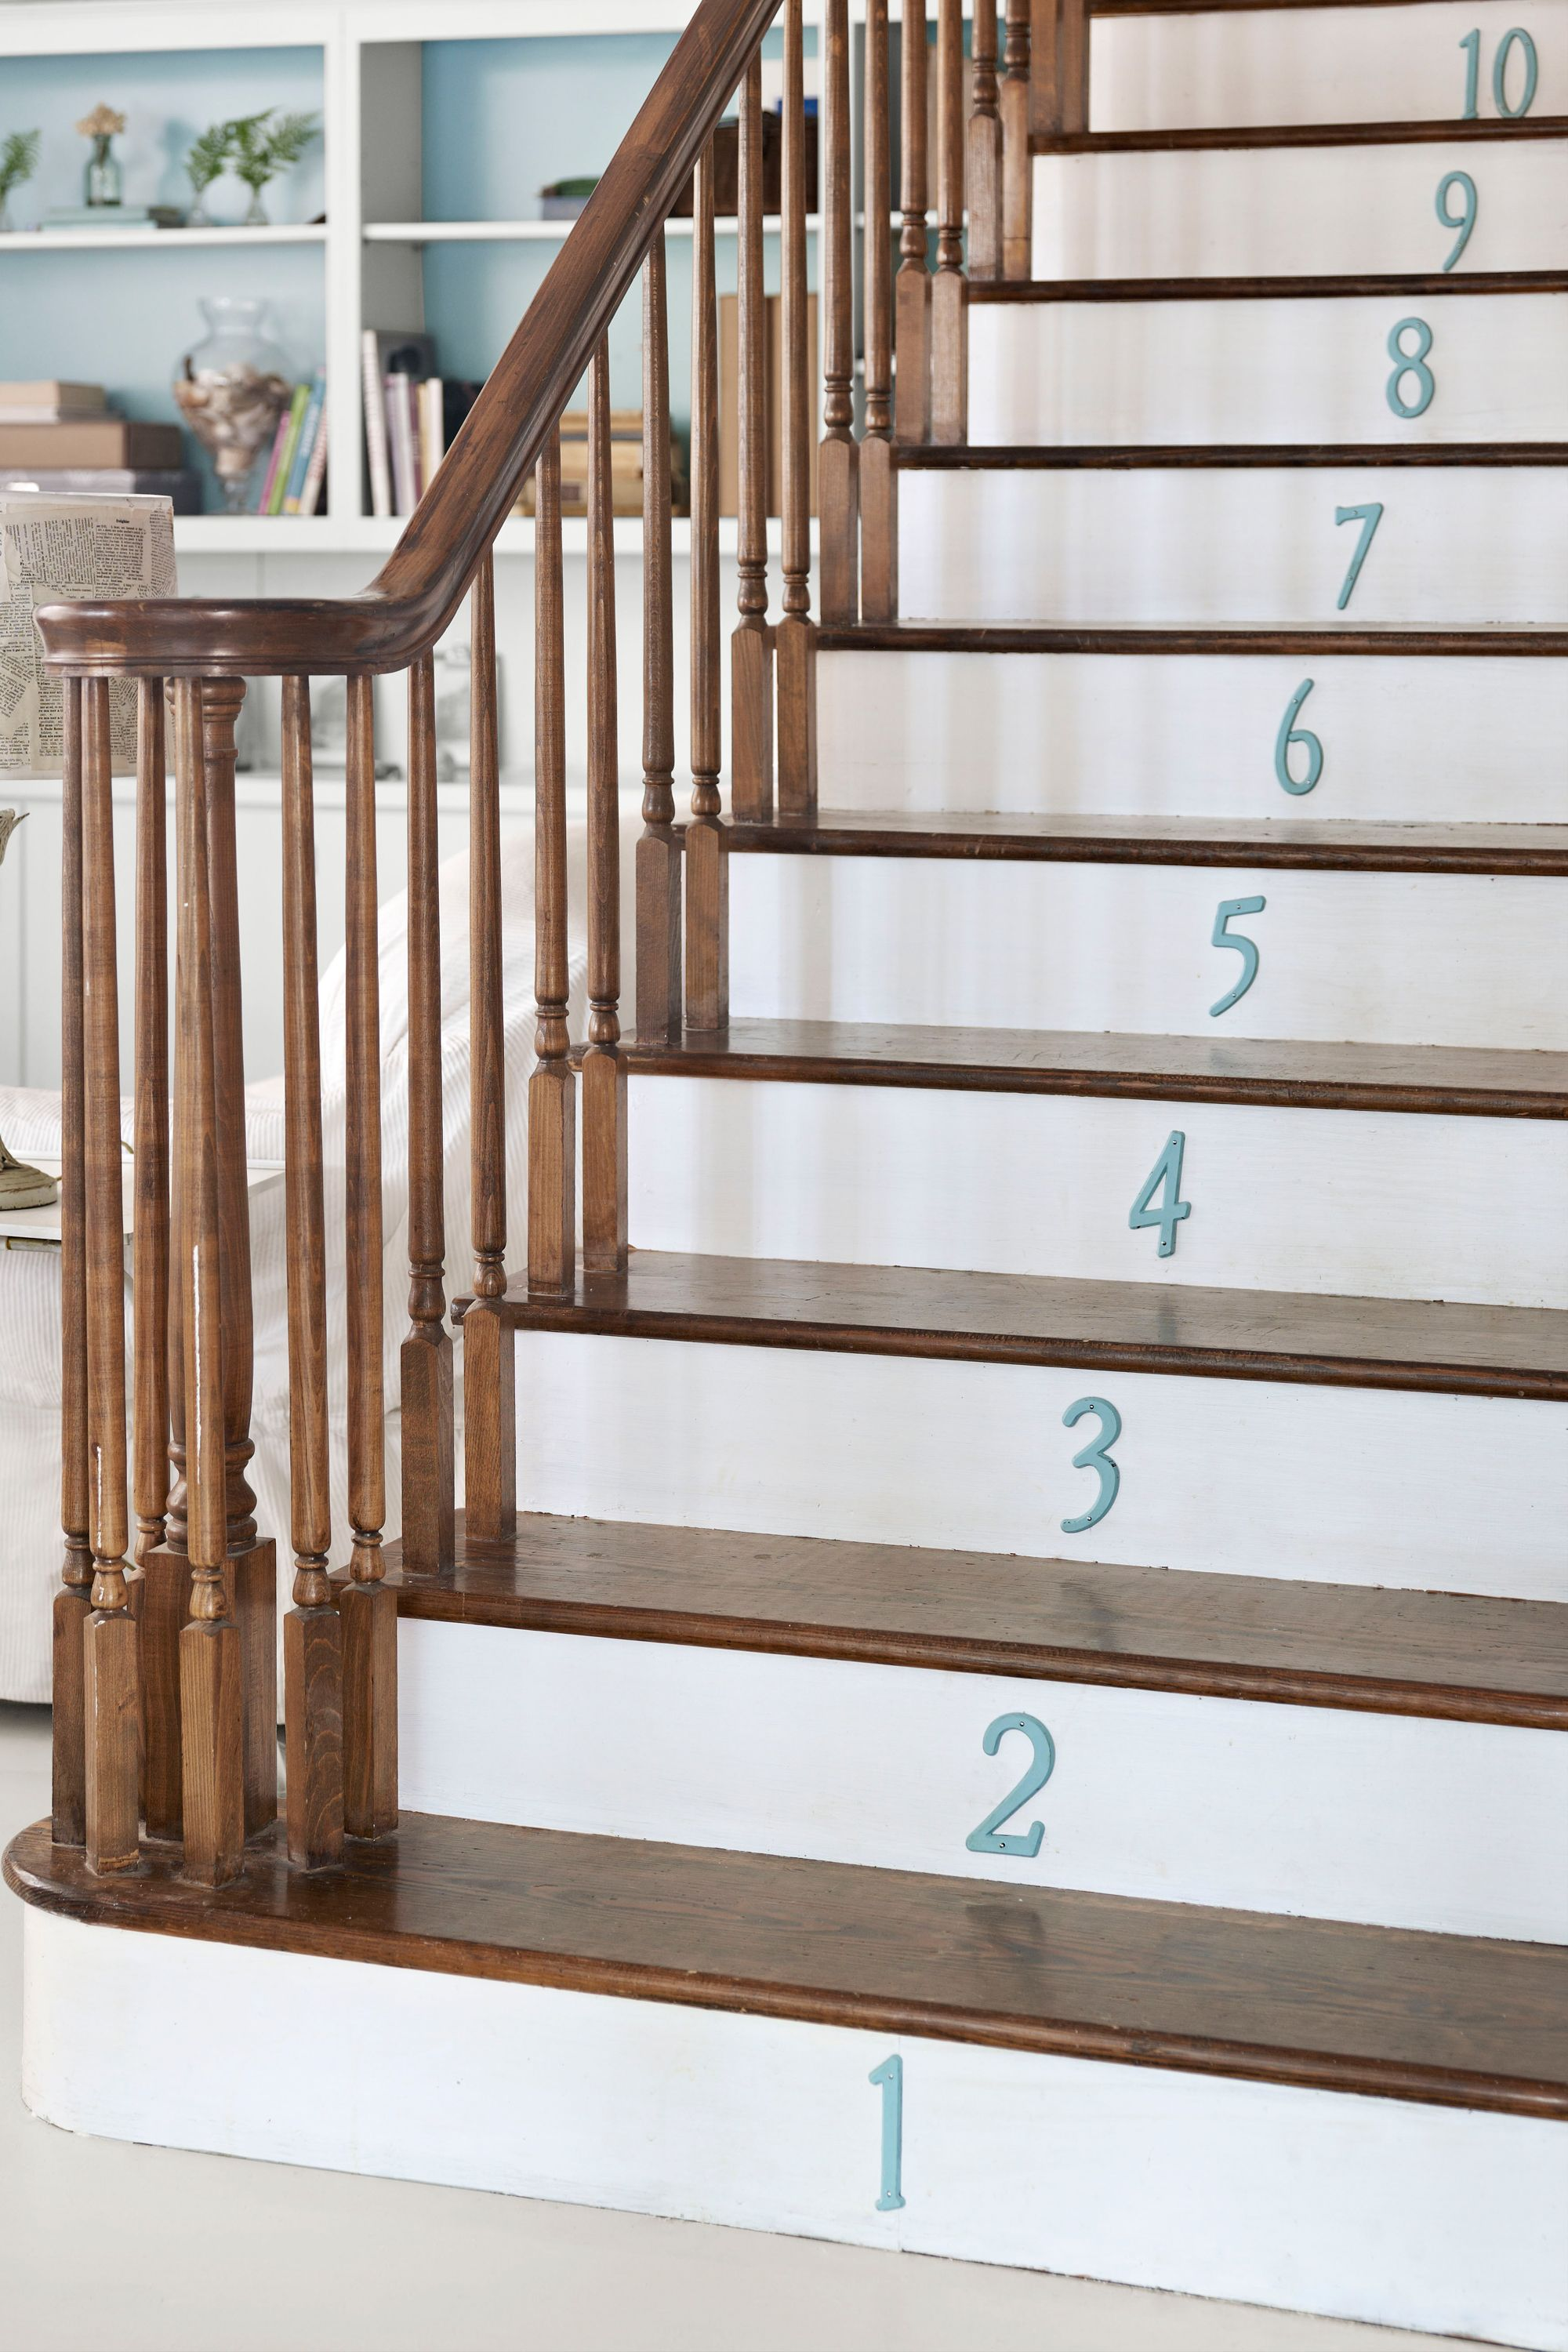 50 Staircase Design Ideas Beautiful Ways To Decorate A Stairway